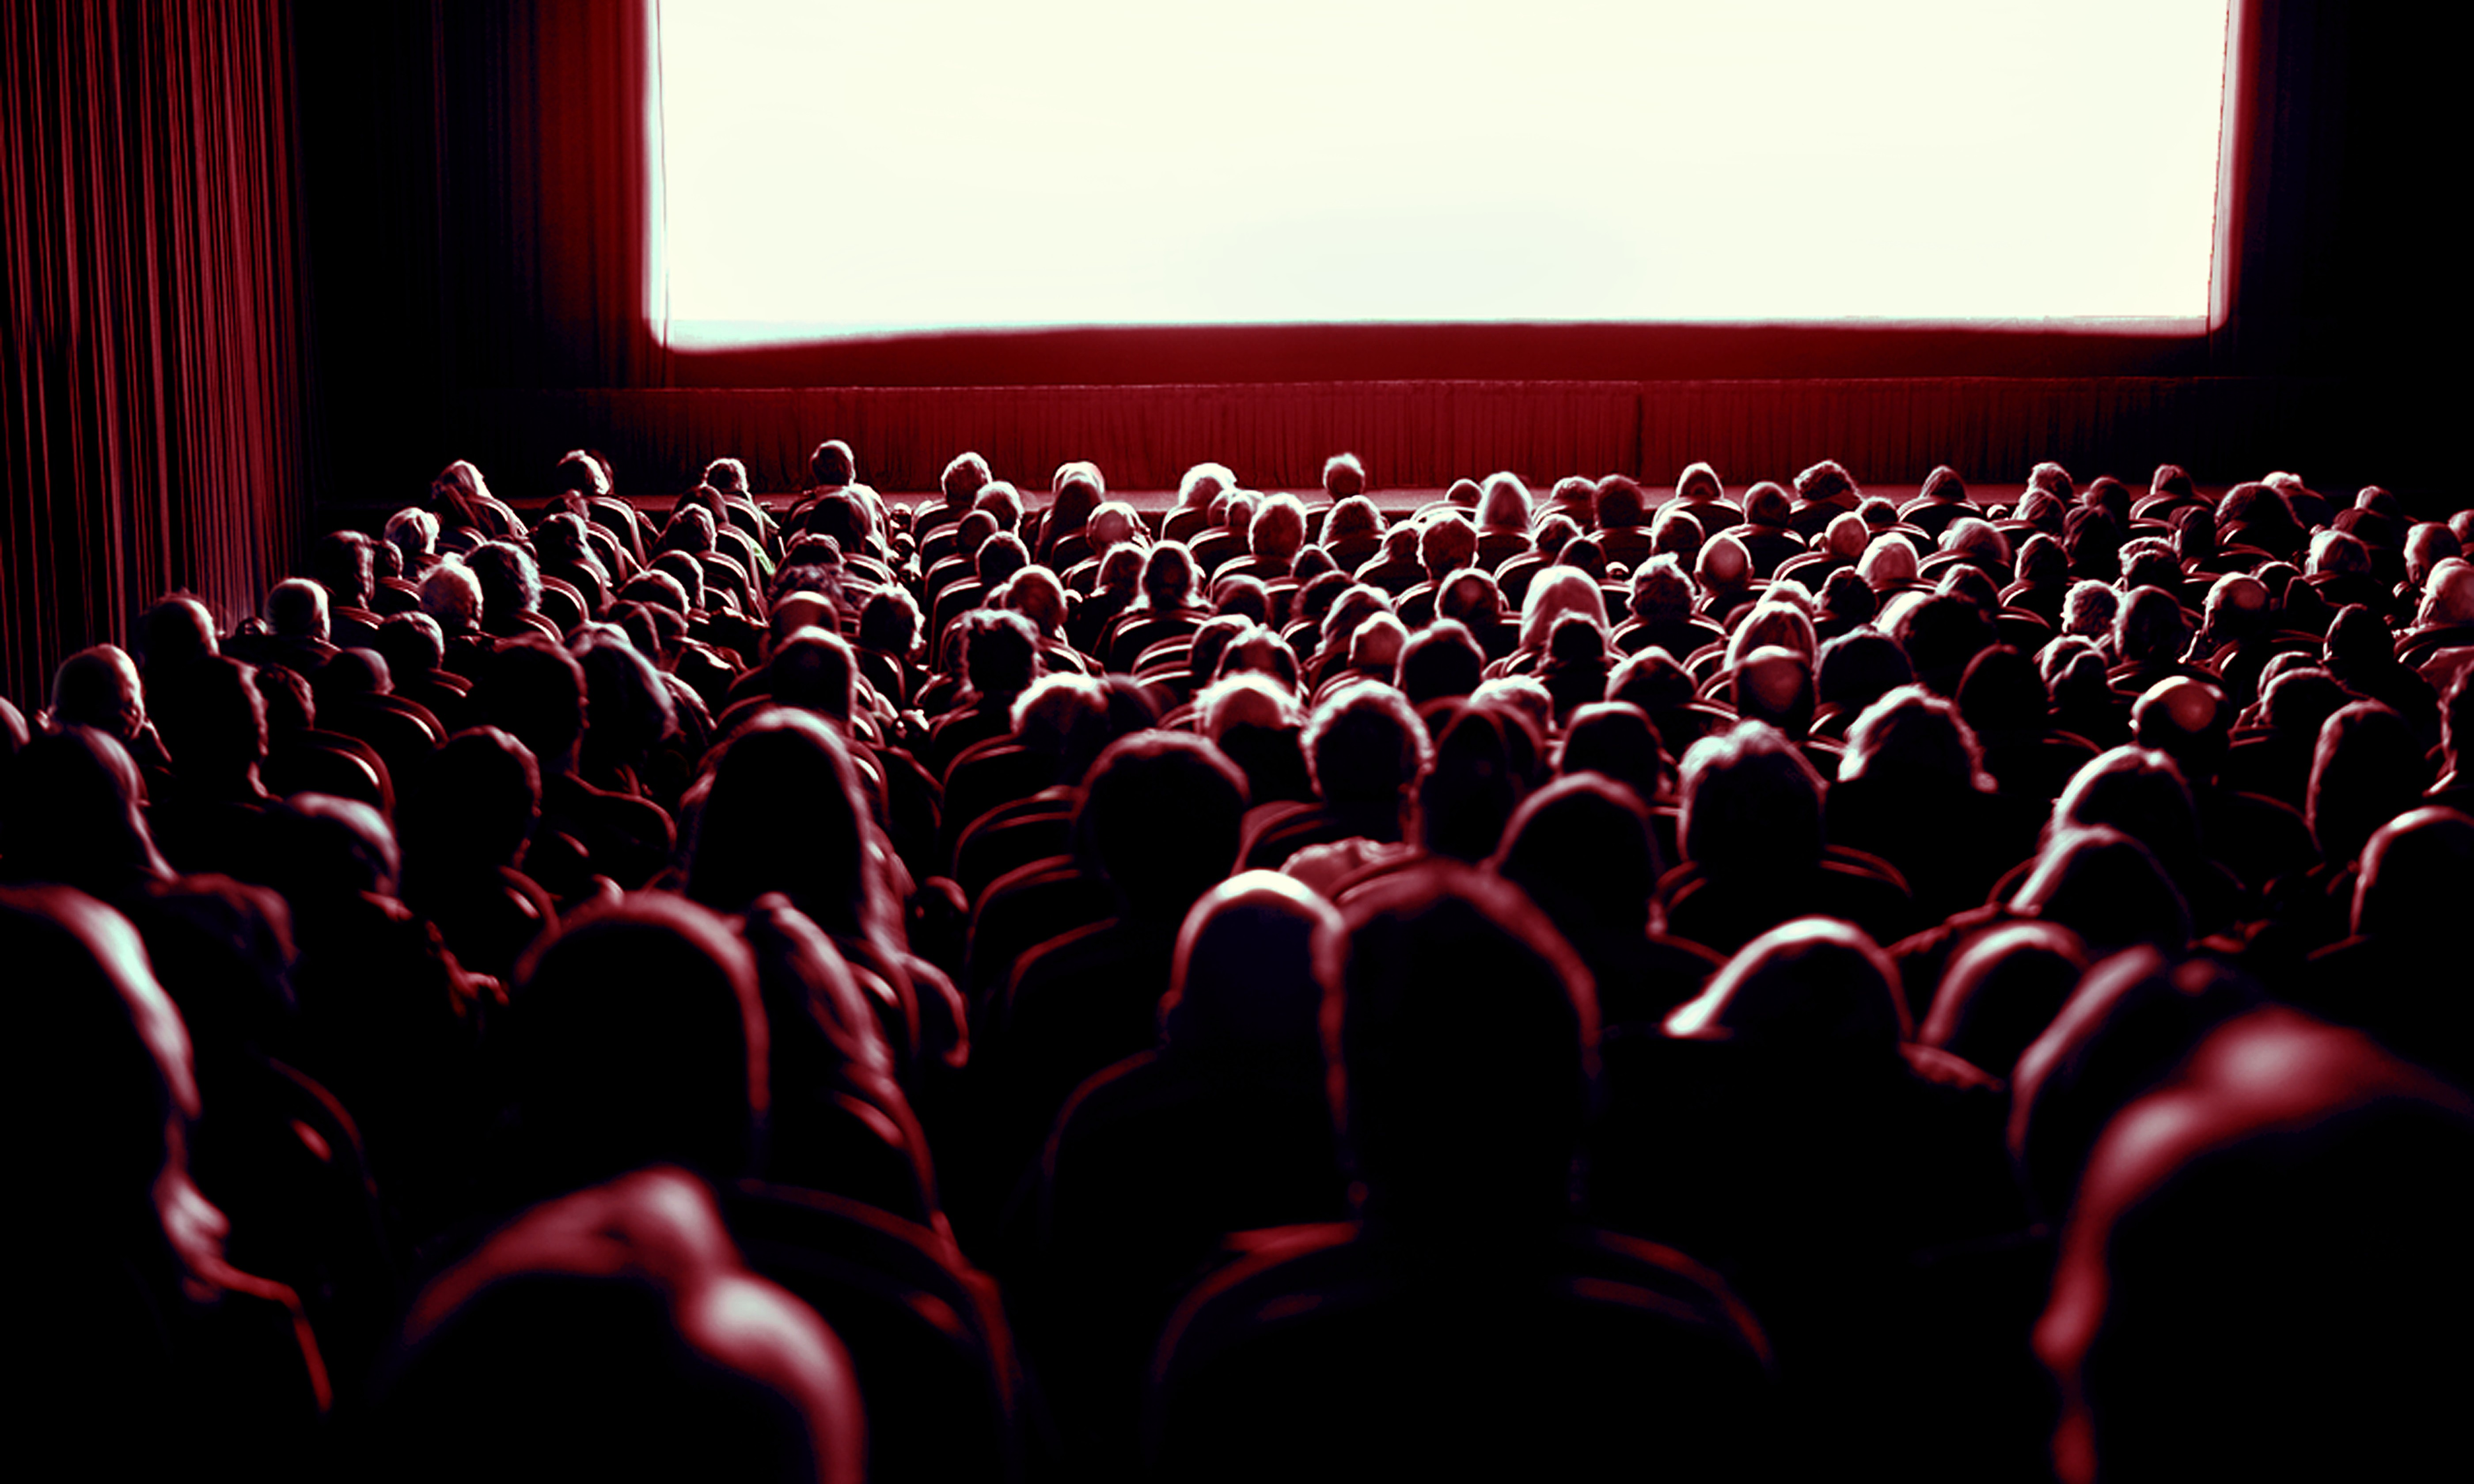 crowd in movie theater image